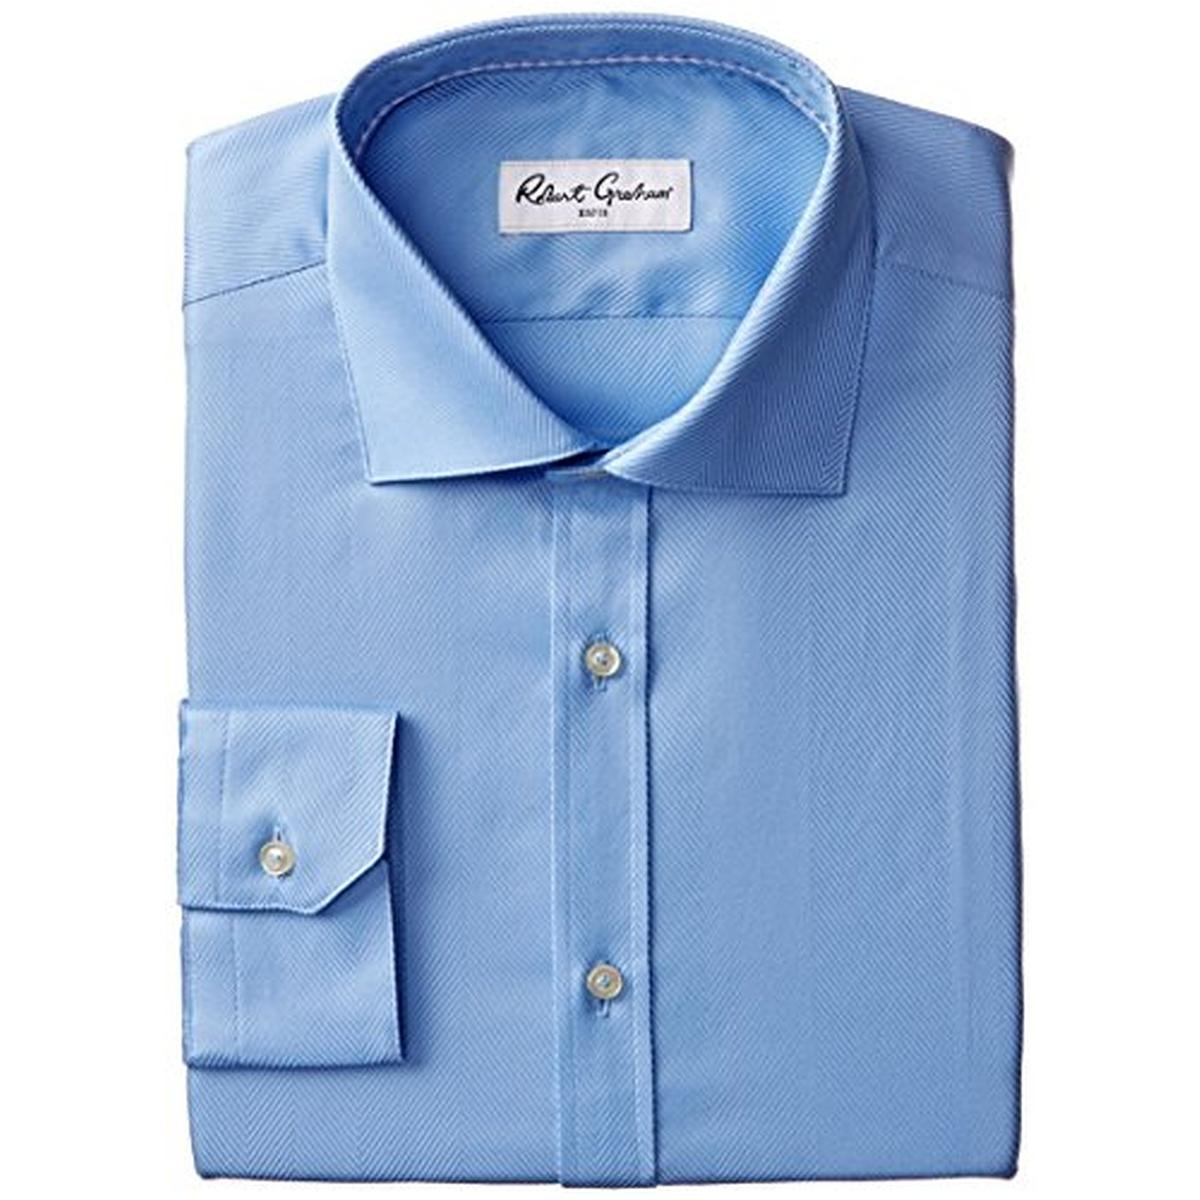 Robert Graham 9442 Mens Lambert Herringbone Tab Collar